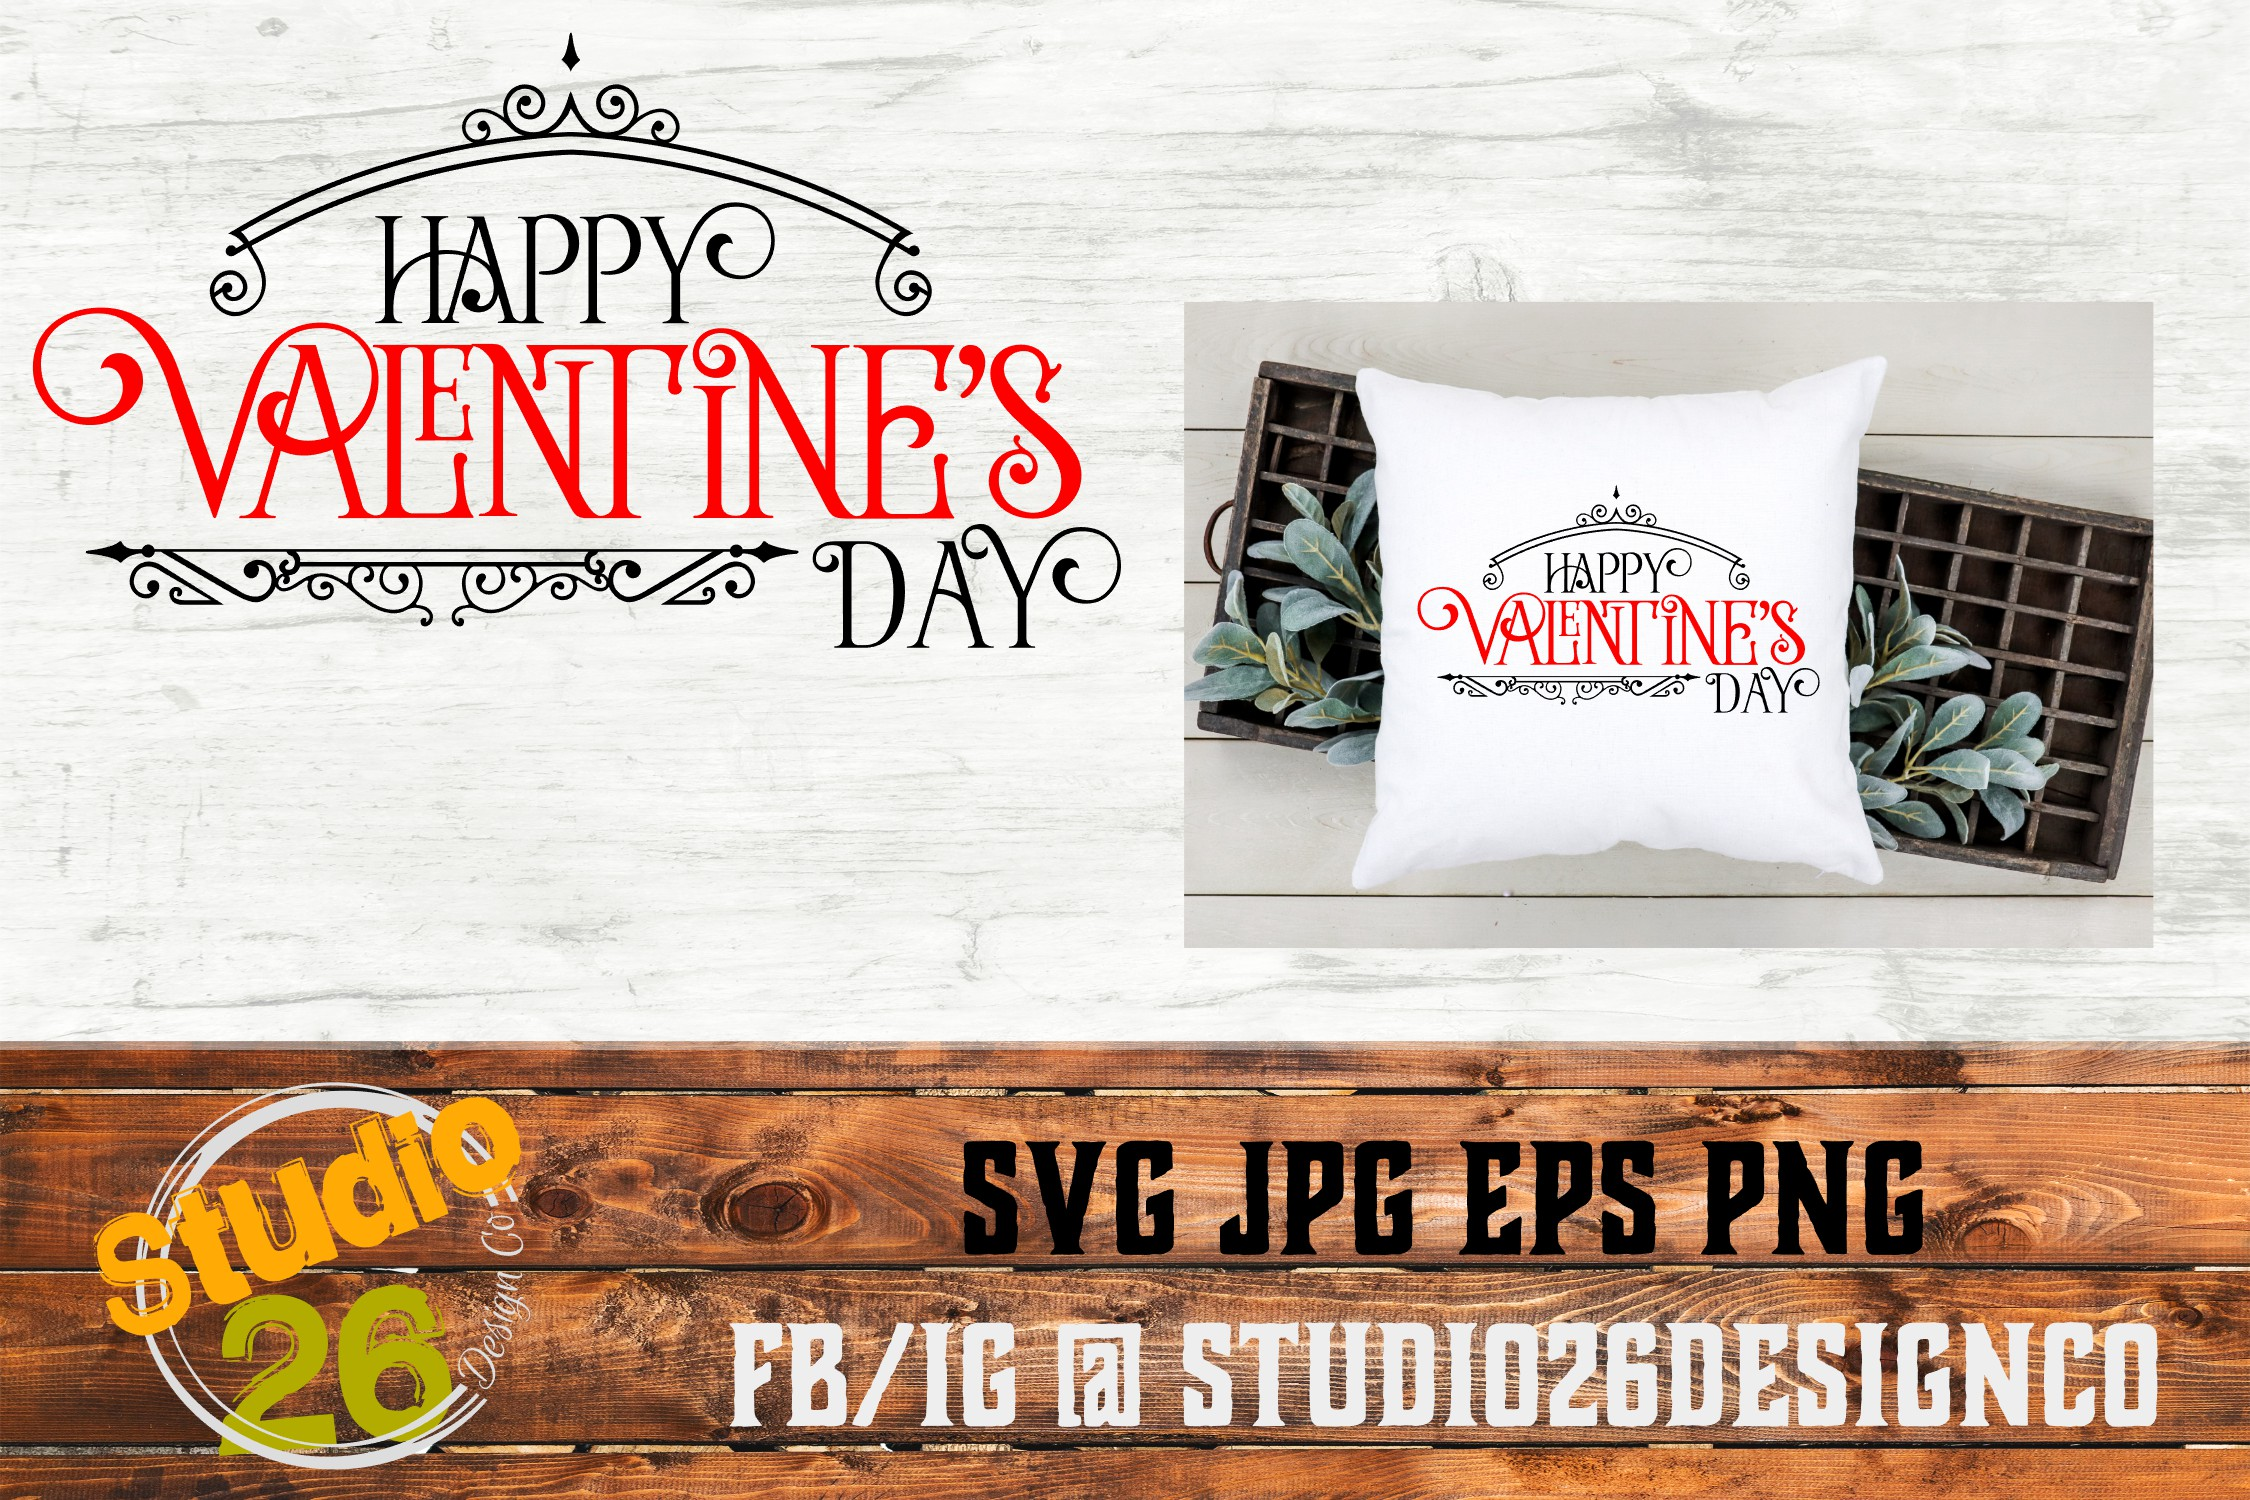 Download Free Happy Valentine S Day Svg Graphic By Studio 26 Design Co for Cricut Explore, Silhouette and other cutting machines.